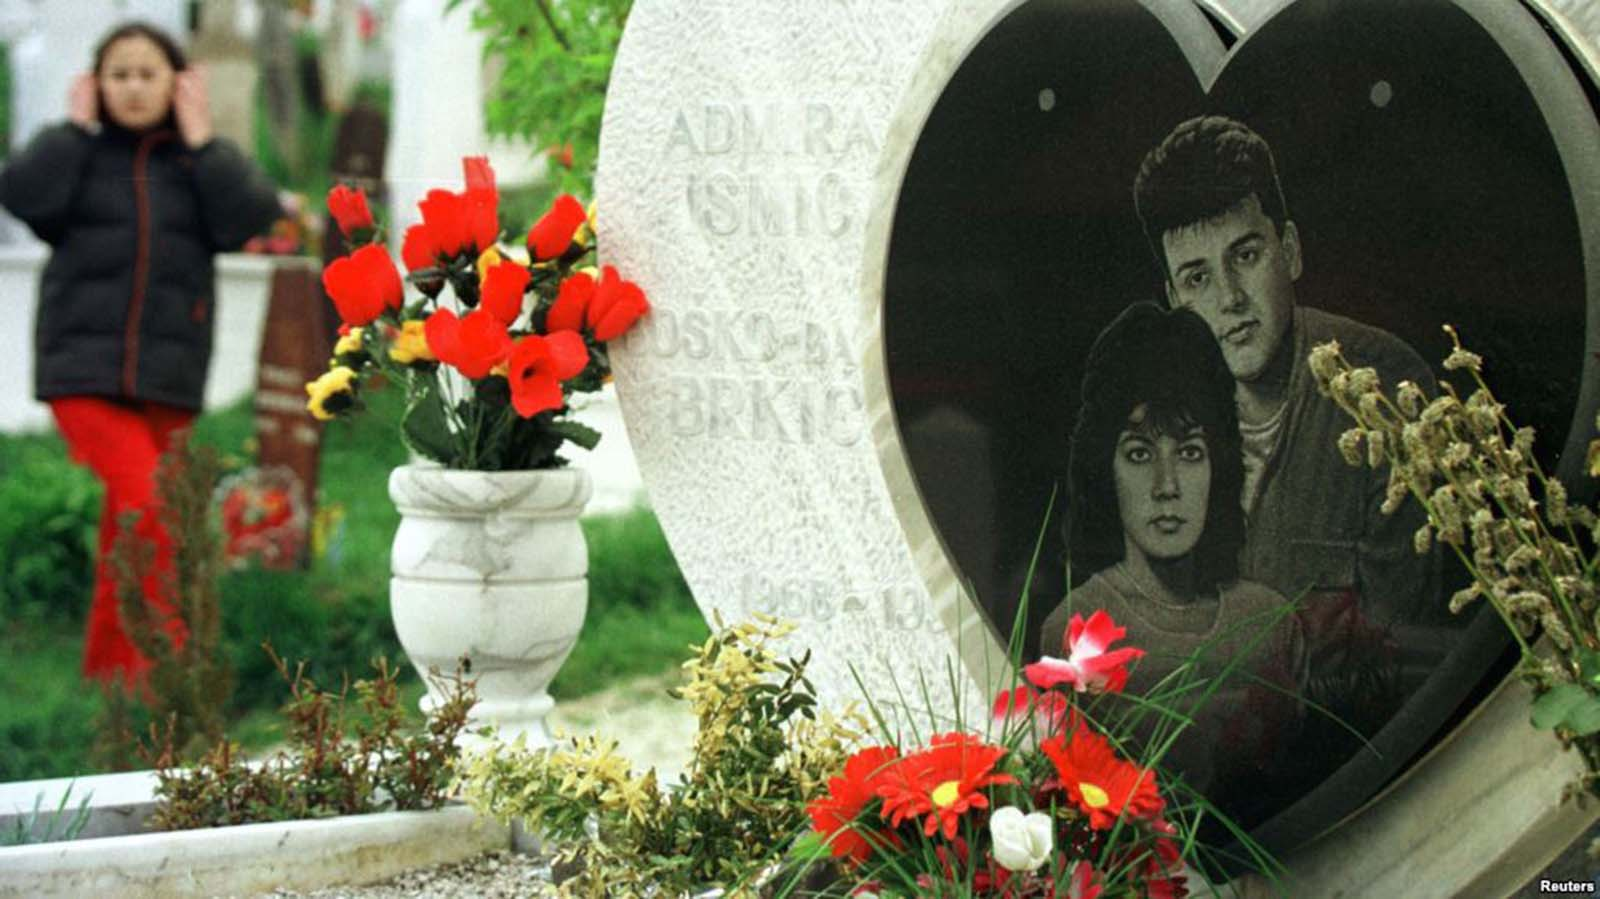 The gravestone of Admira Ismic and Bosko Brkic at Sarajevo's Lion Cemetery.